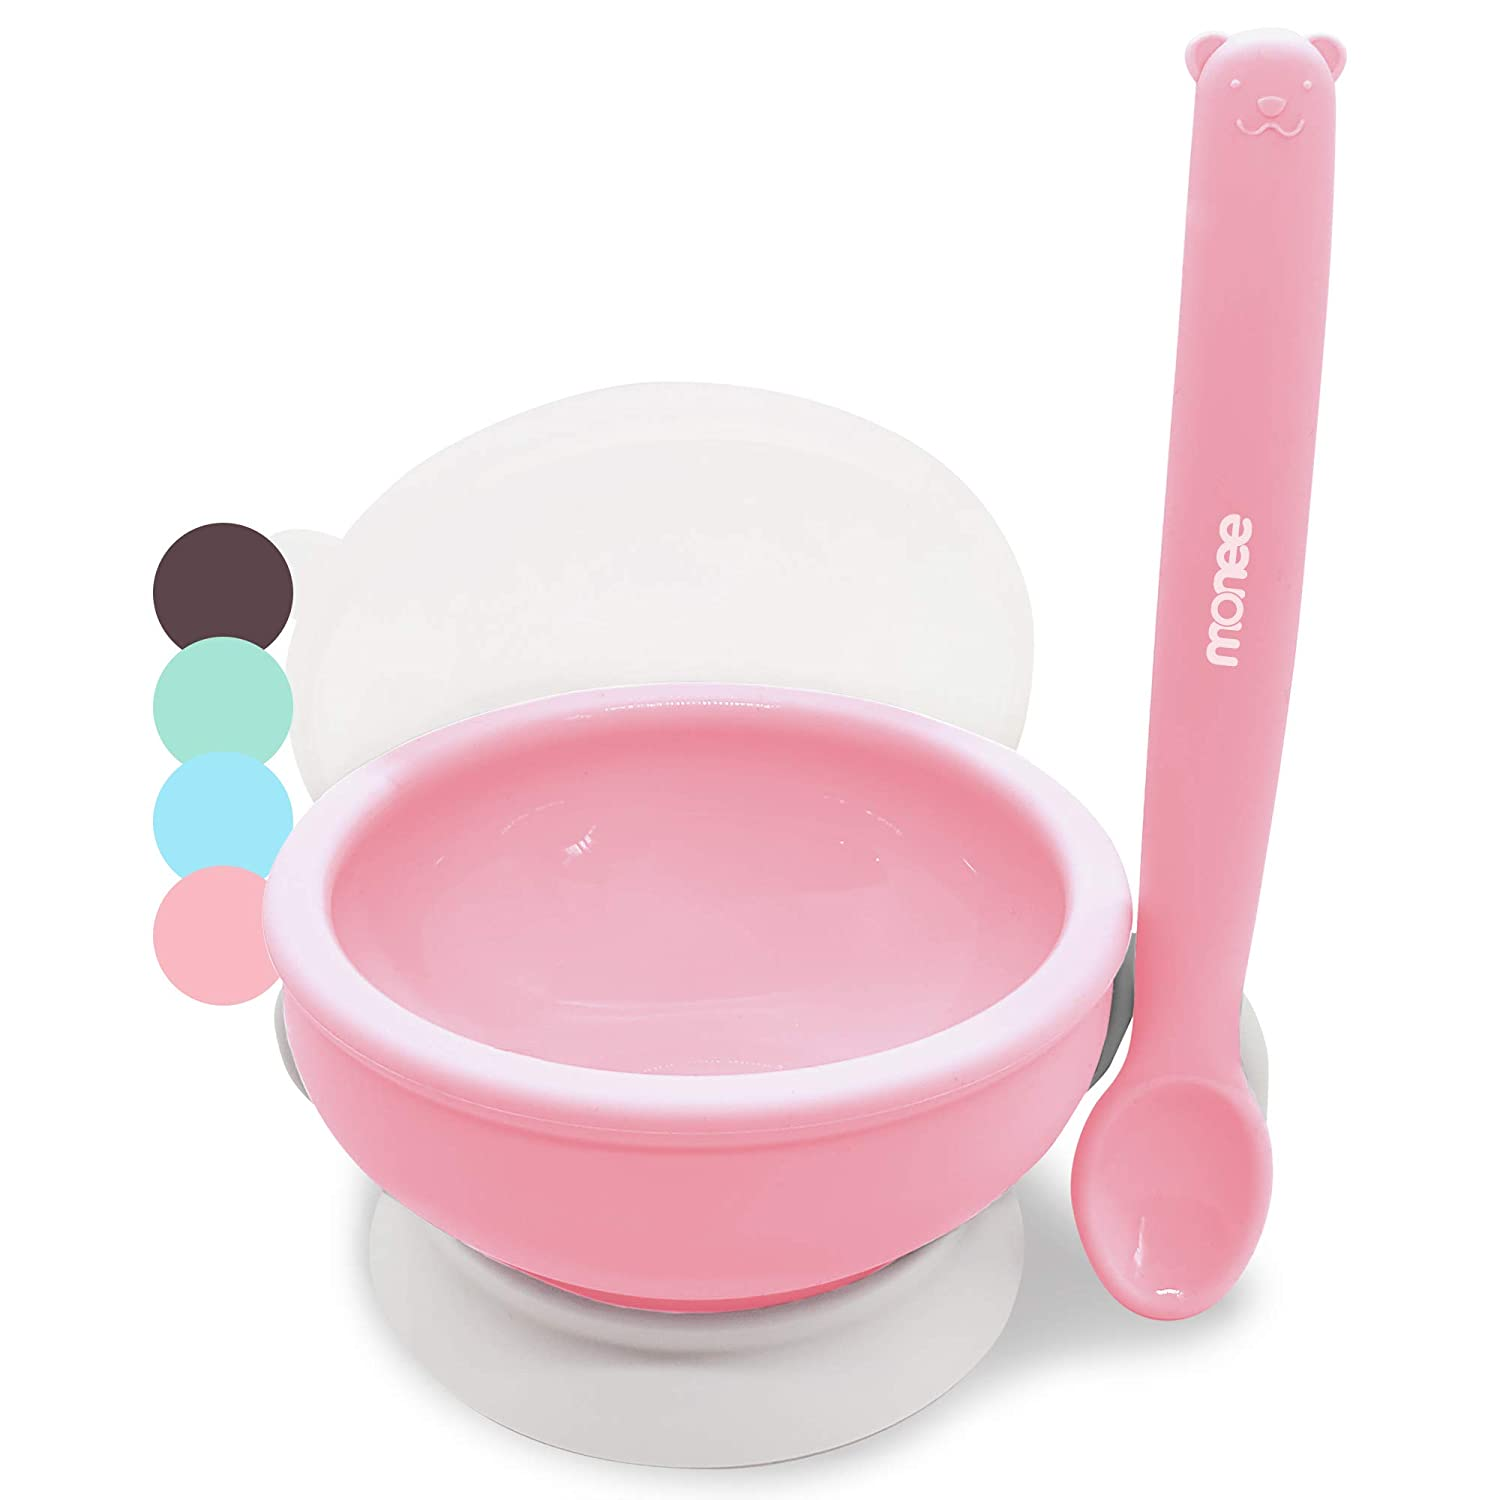 Platinum Silicone Baby Feeding Set, BPA Free, Dishwasher Safe, Leak Proof Lid, Storage & Travel, Spoon Doubles as a Soft Teether for Baby Led Weaning